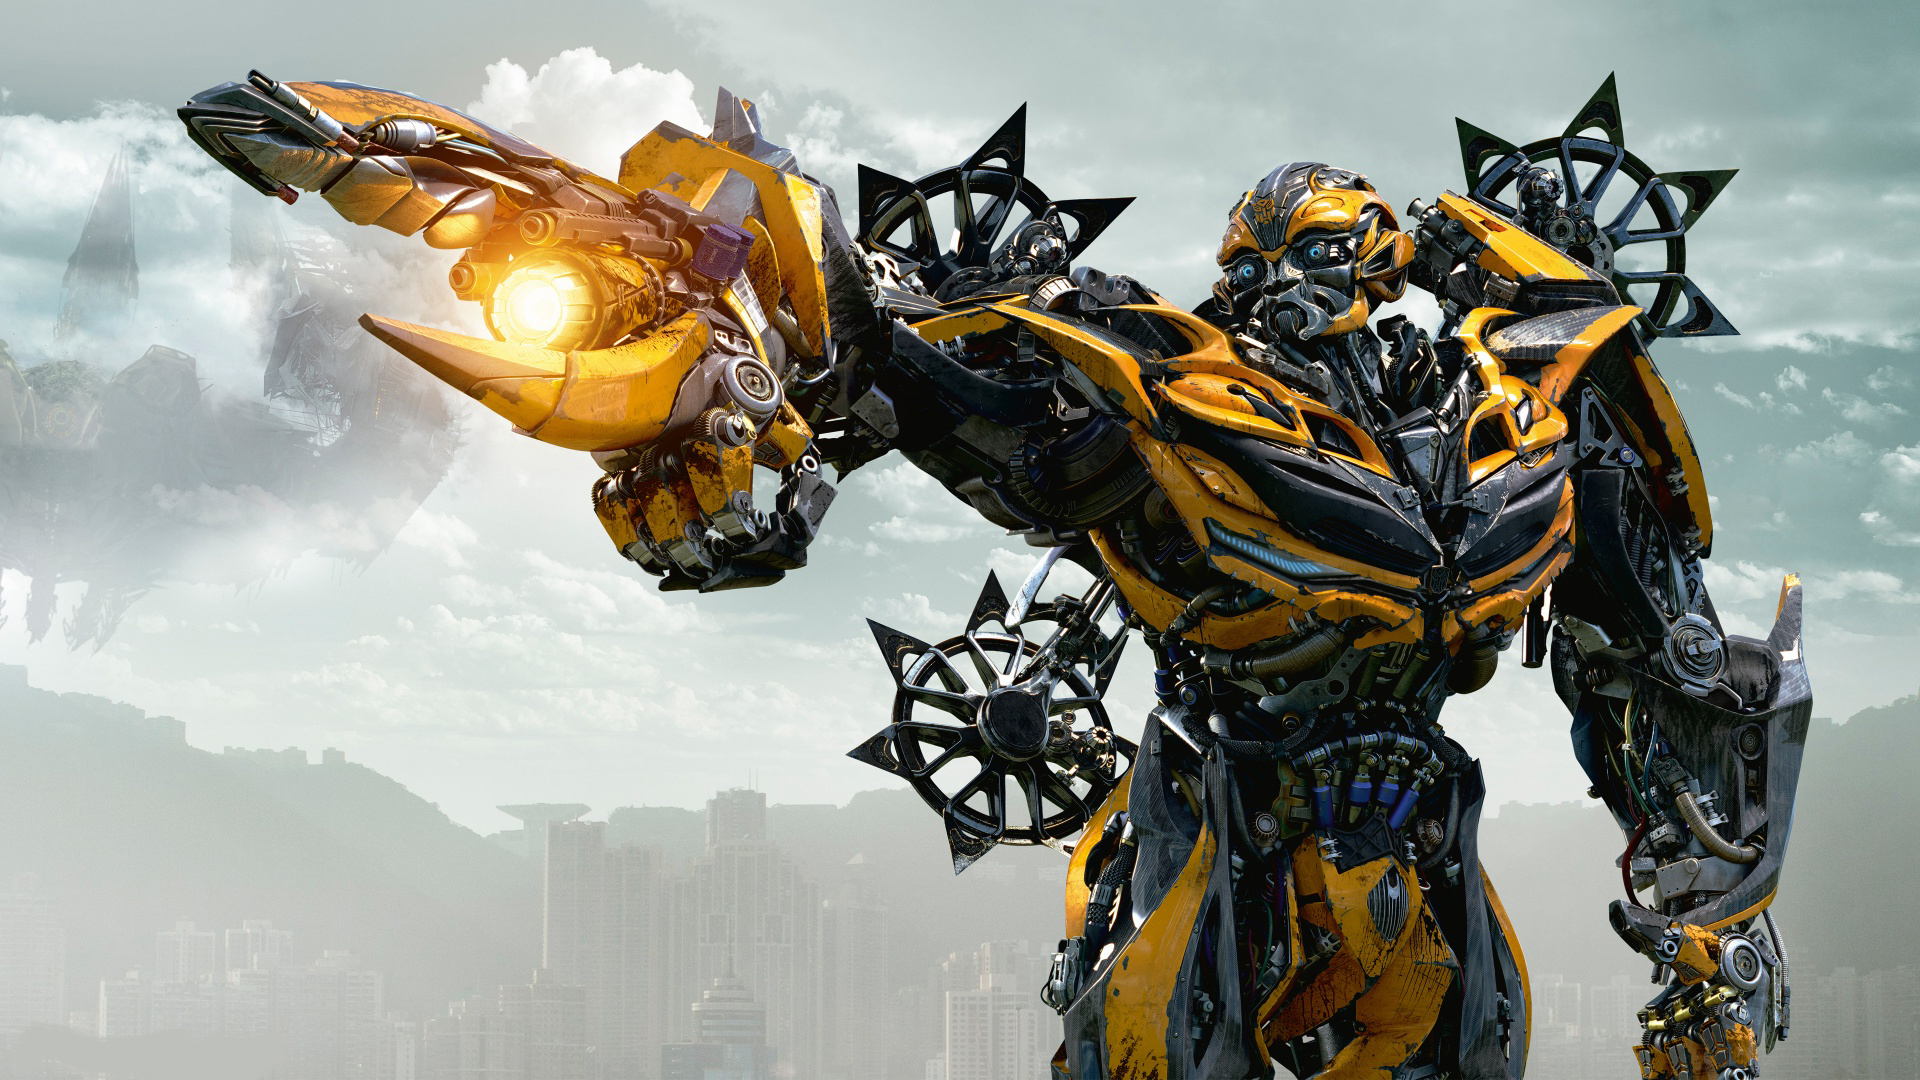 transformers 6 movie transformers 7 movie and